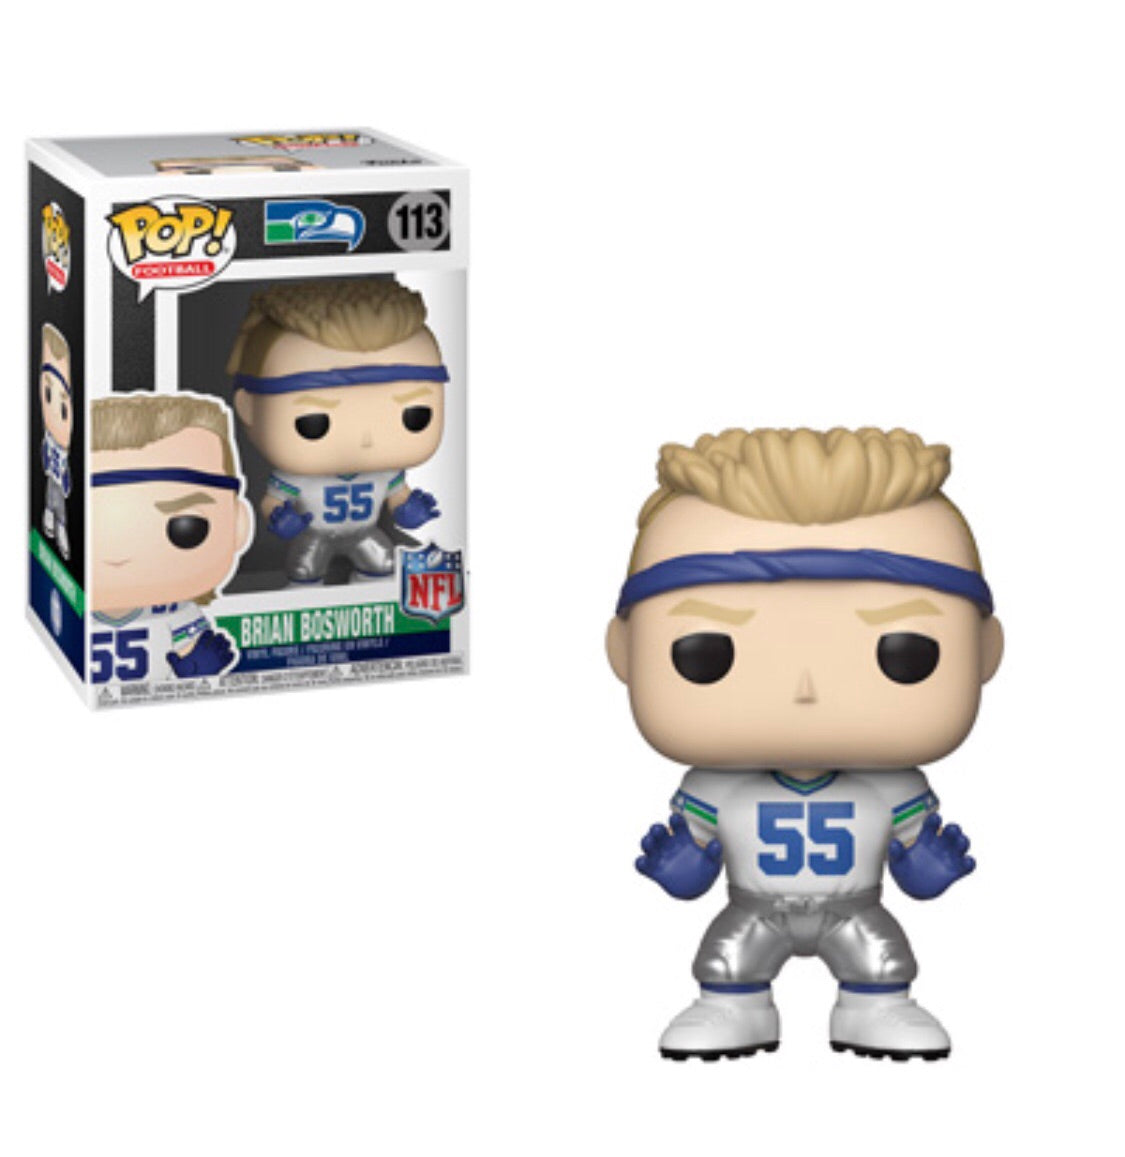 Pop! NFL Legends Brian Bosworth